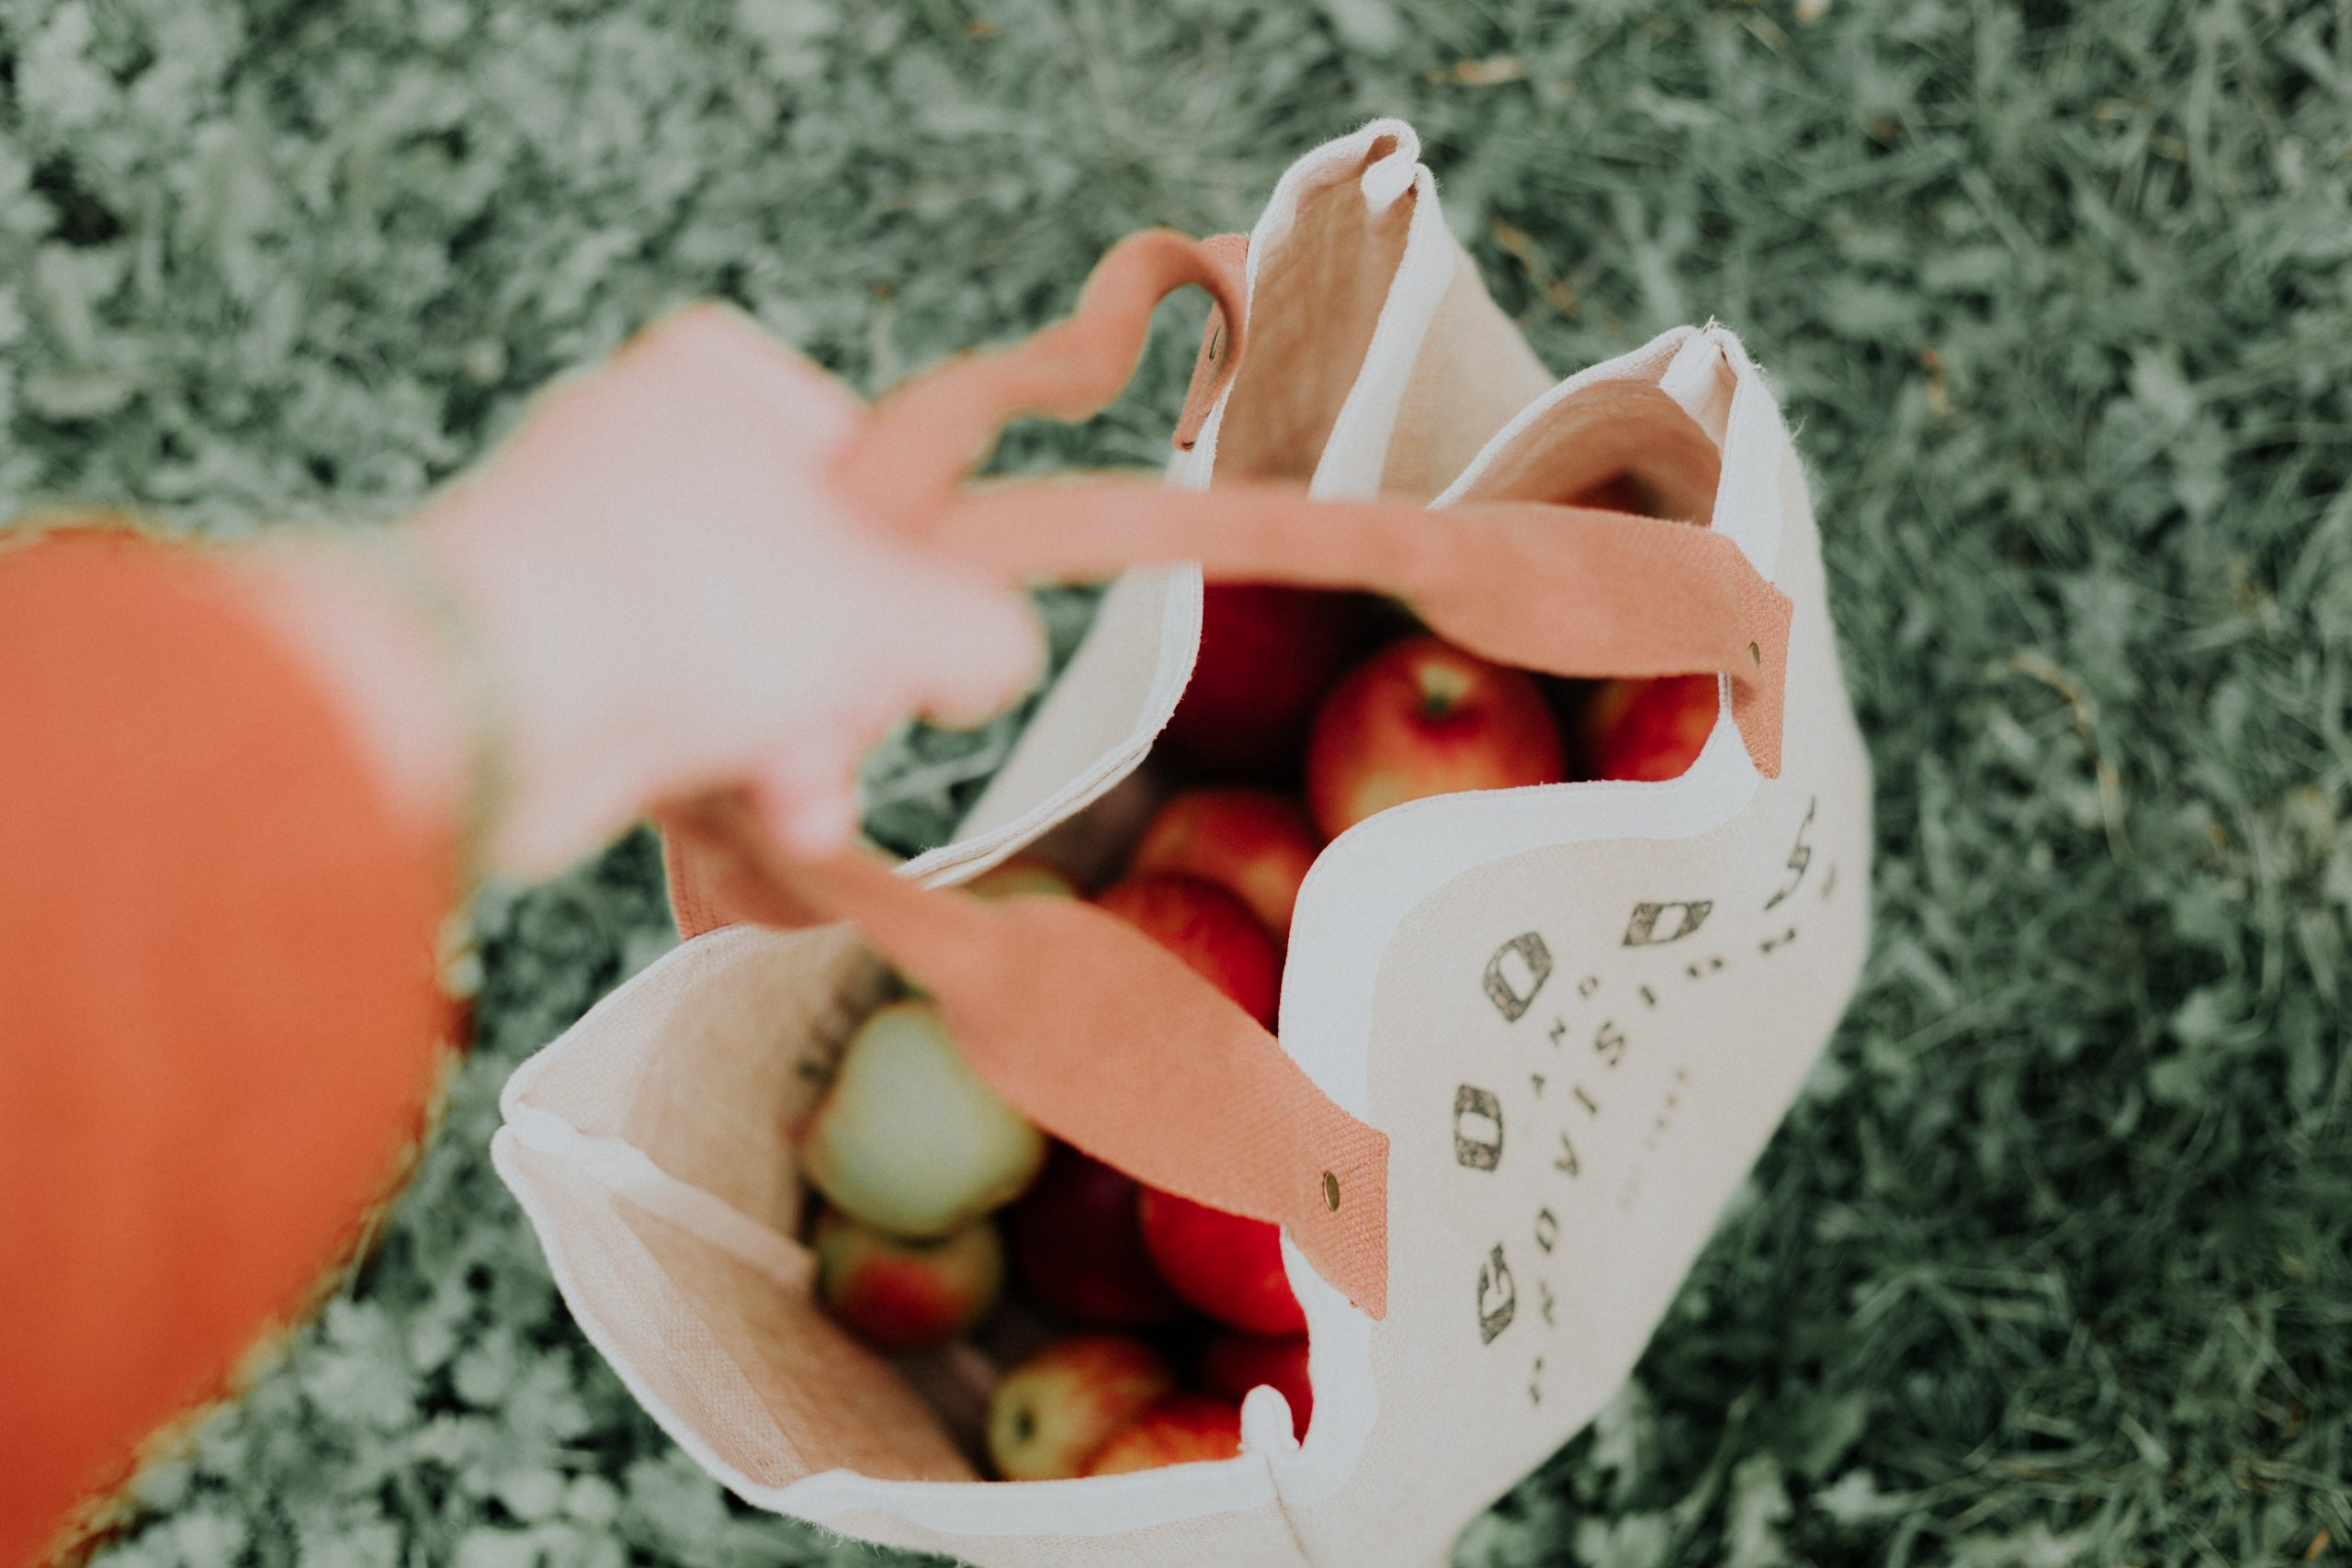 Photograph of a shopping bag full of apples